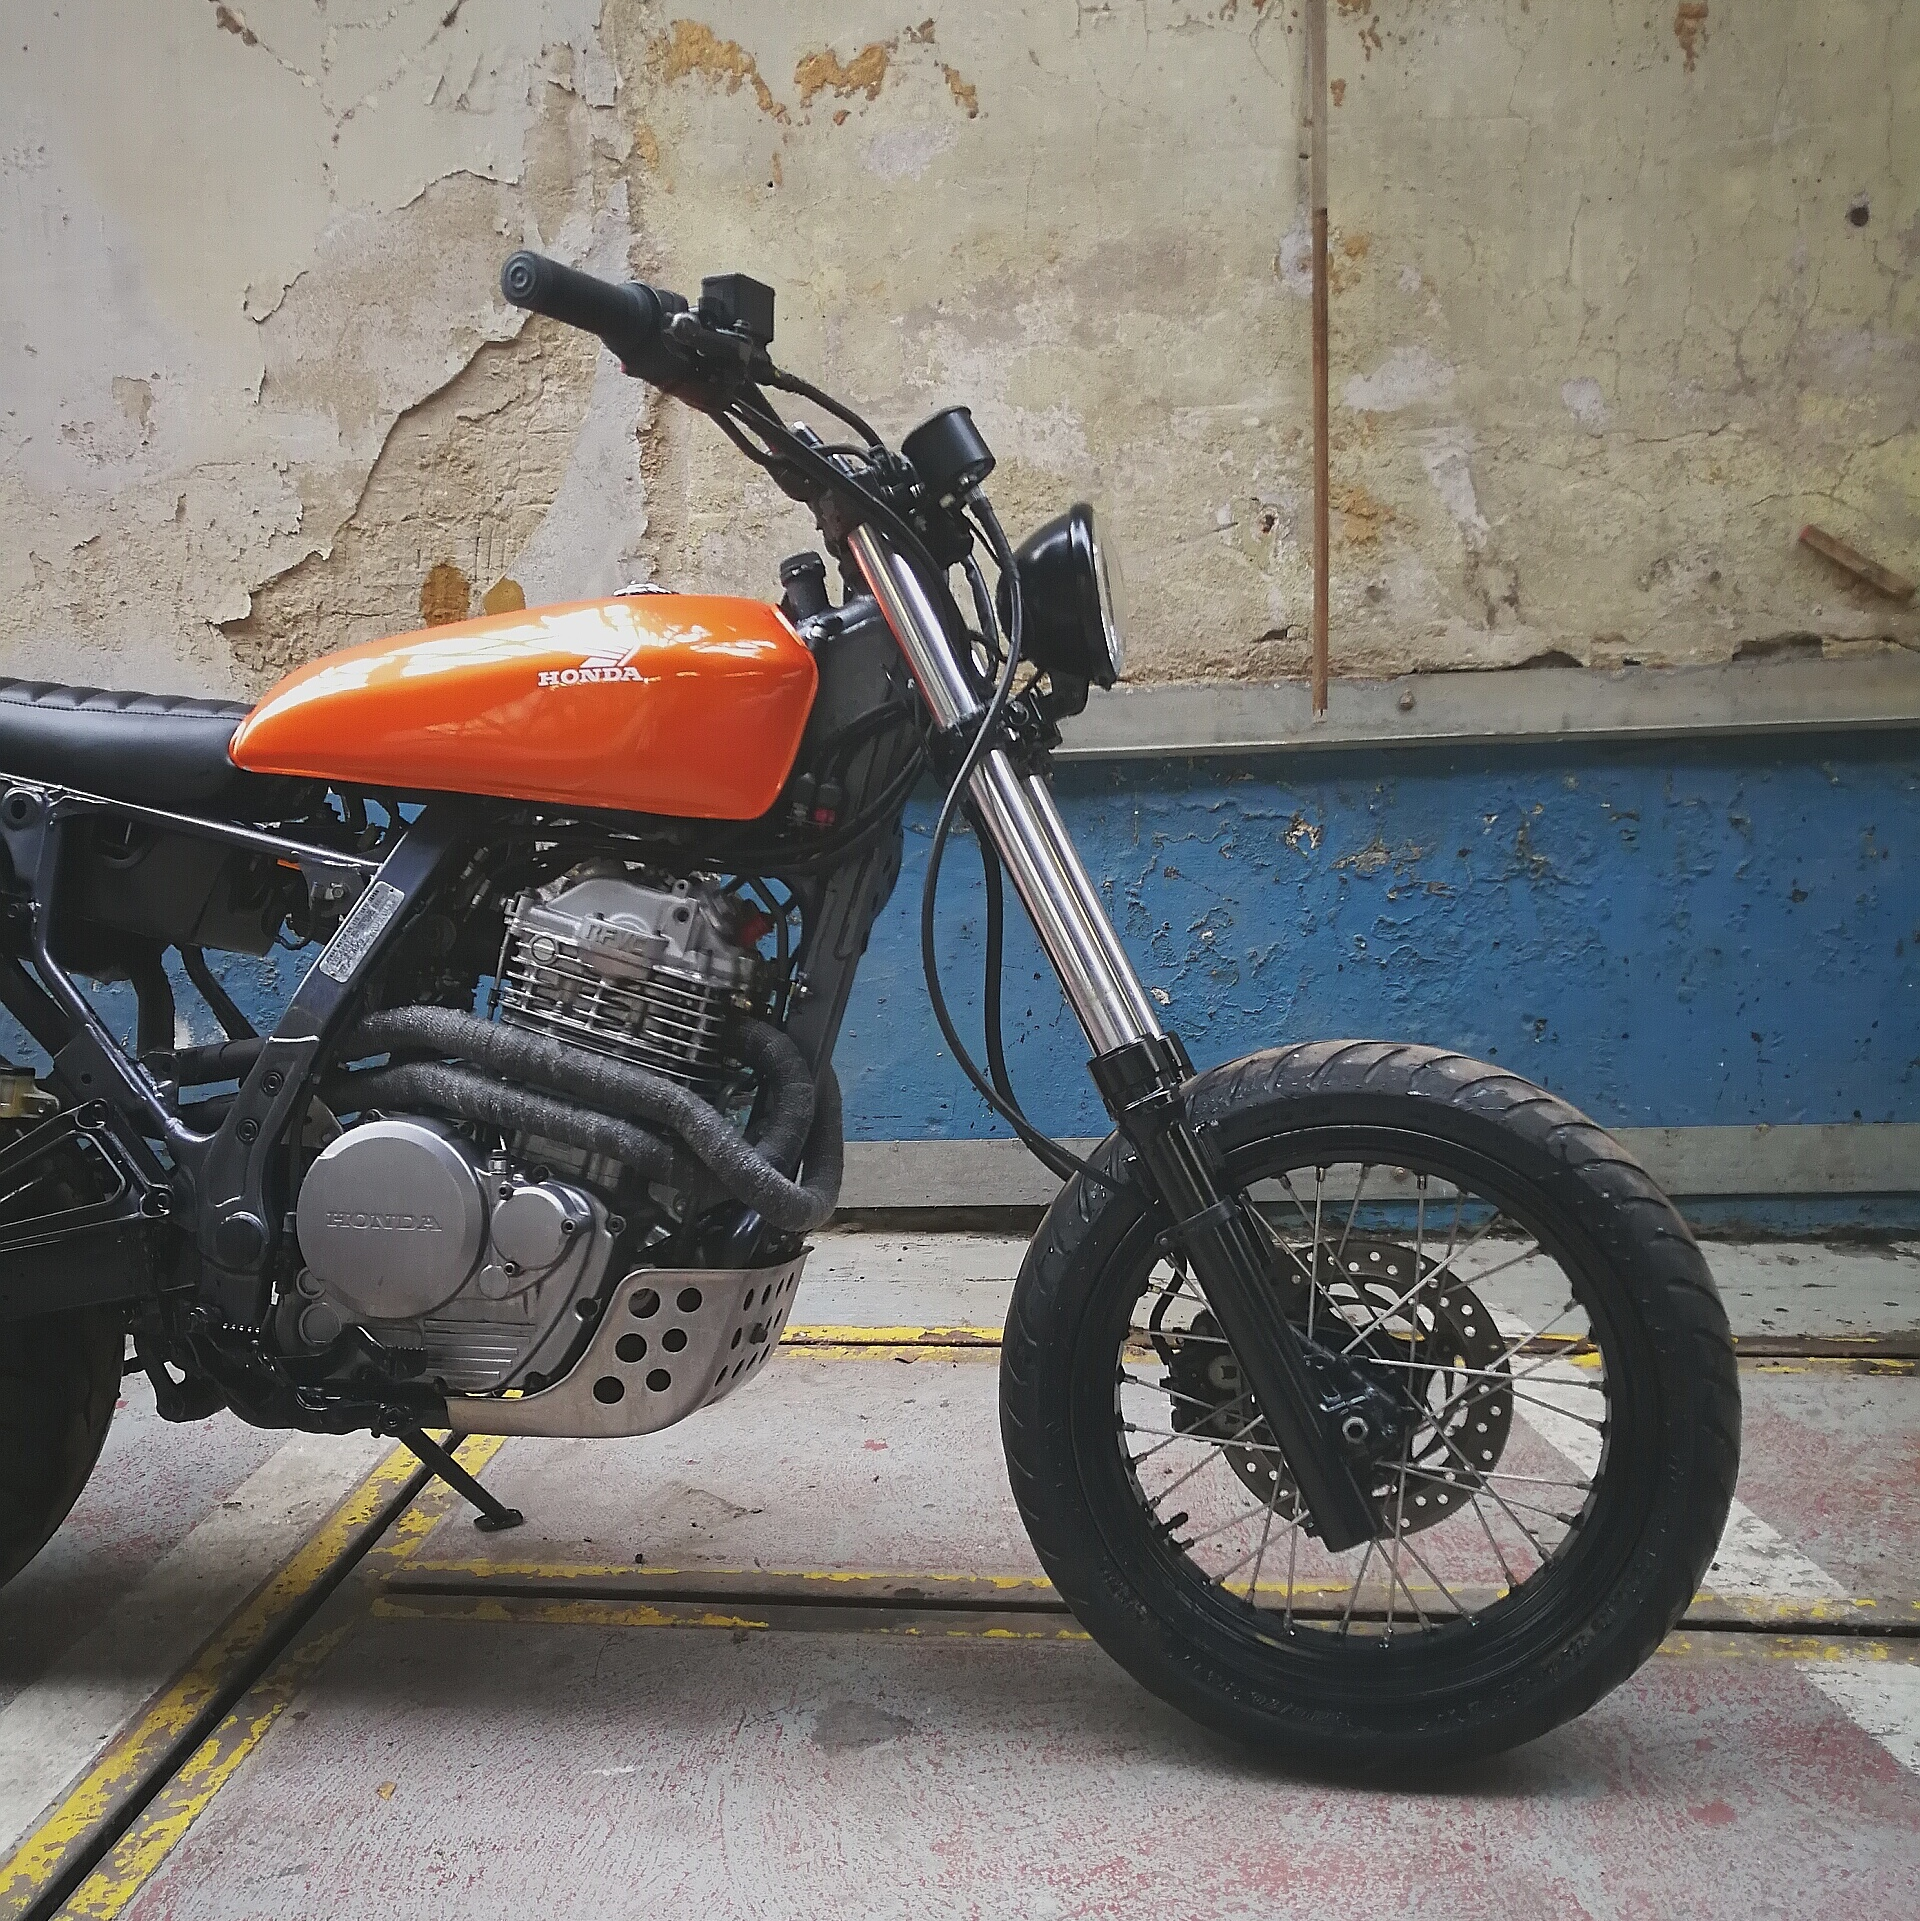 TOMA CUSTOMS HONDA NX650